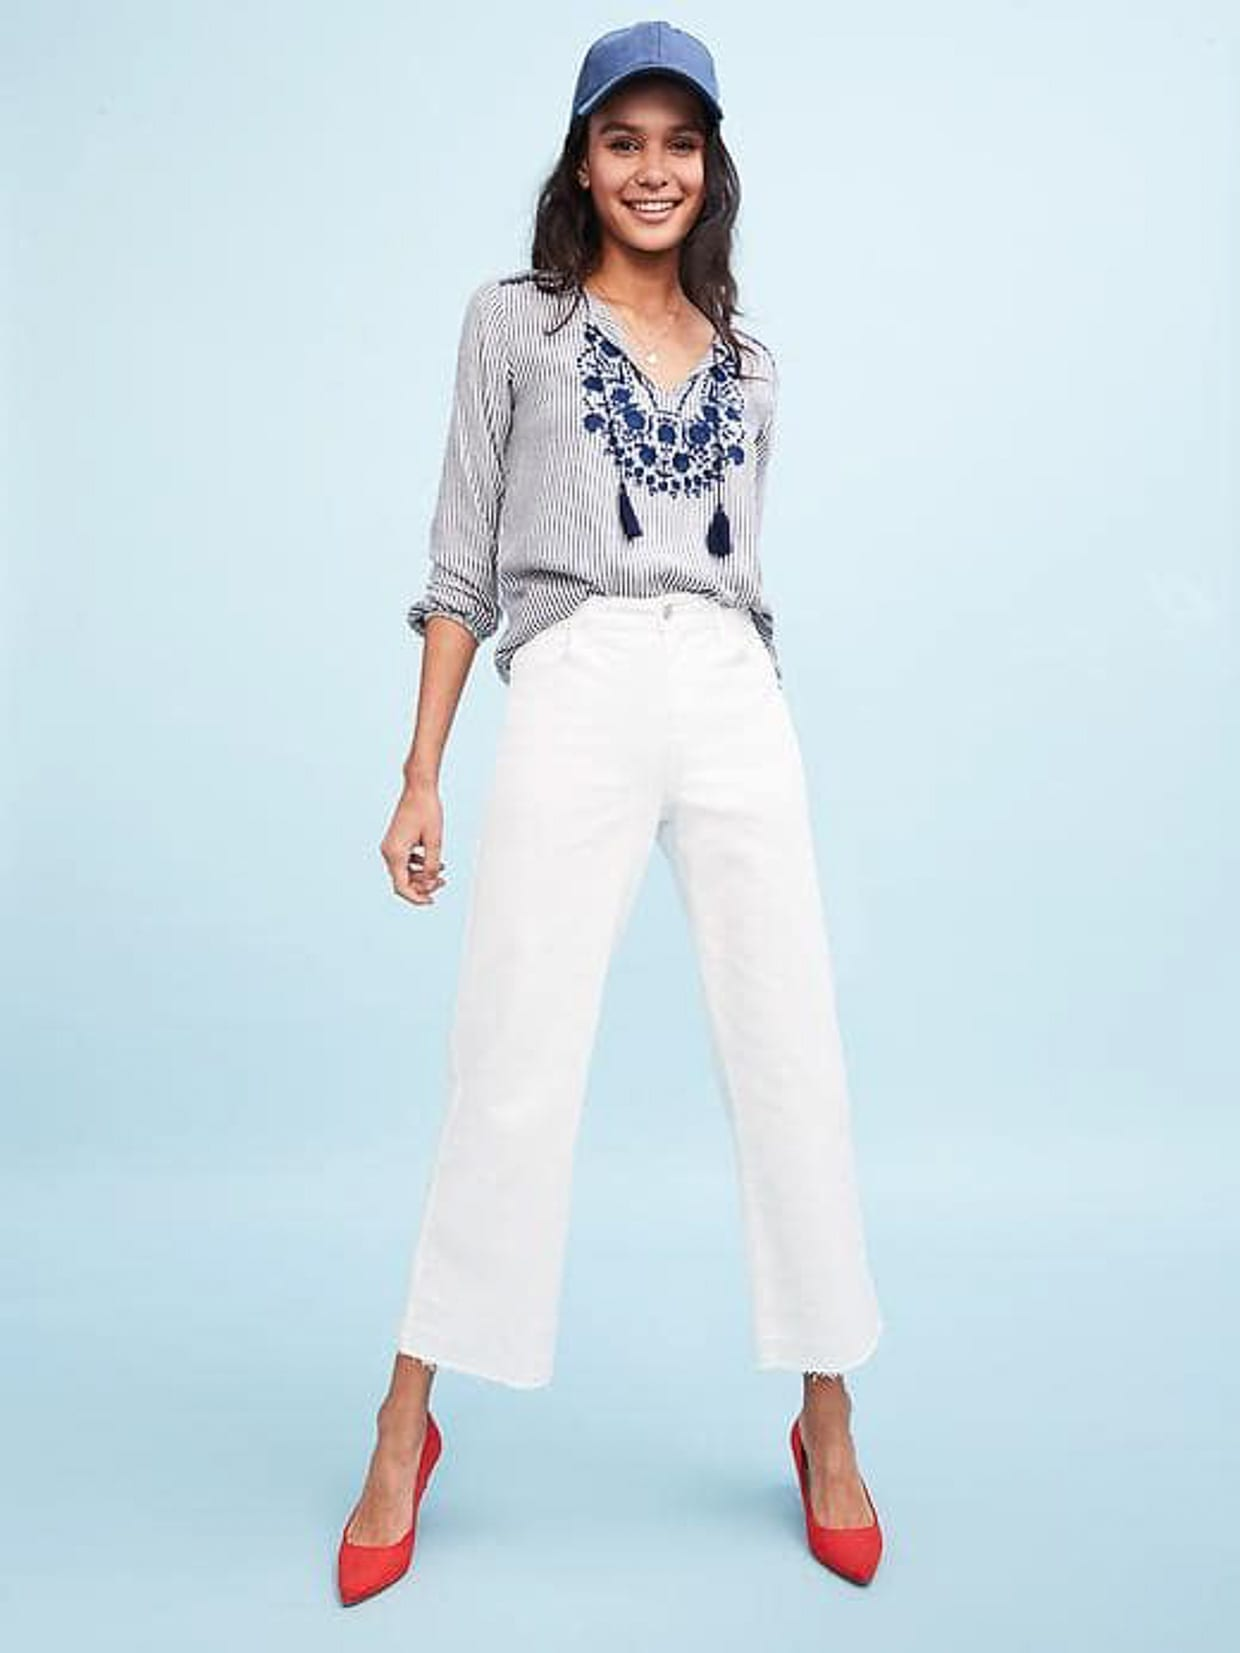 Old Navy Outfit Inspiration For Spring - Poor Little It Girl